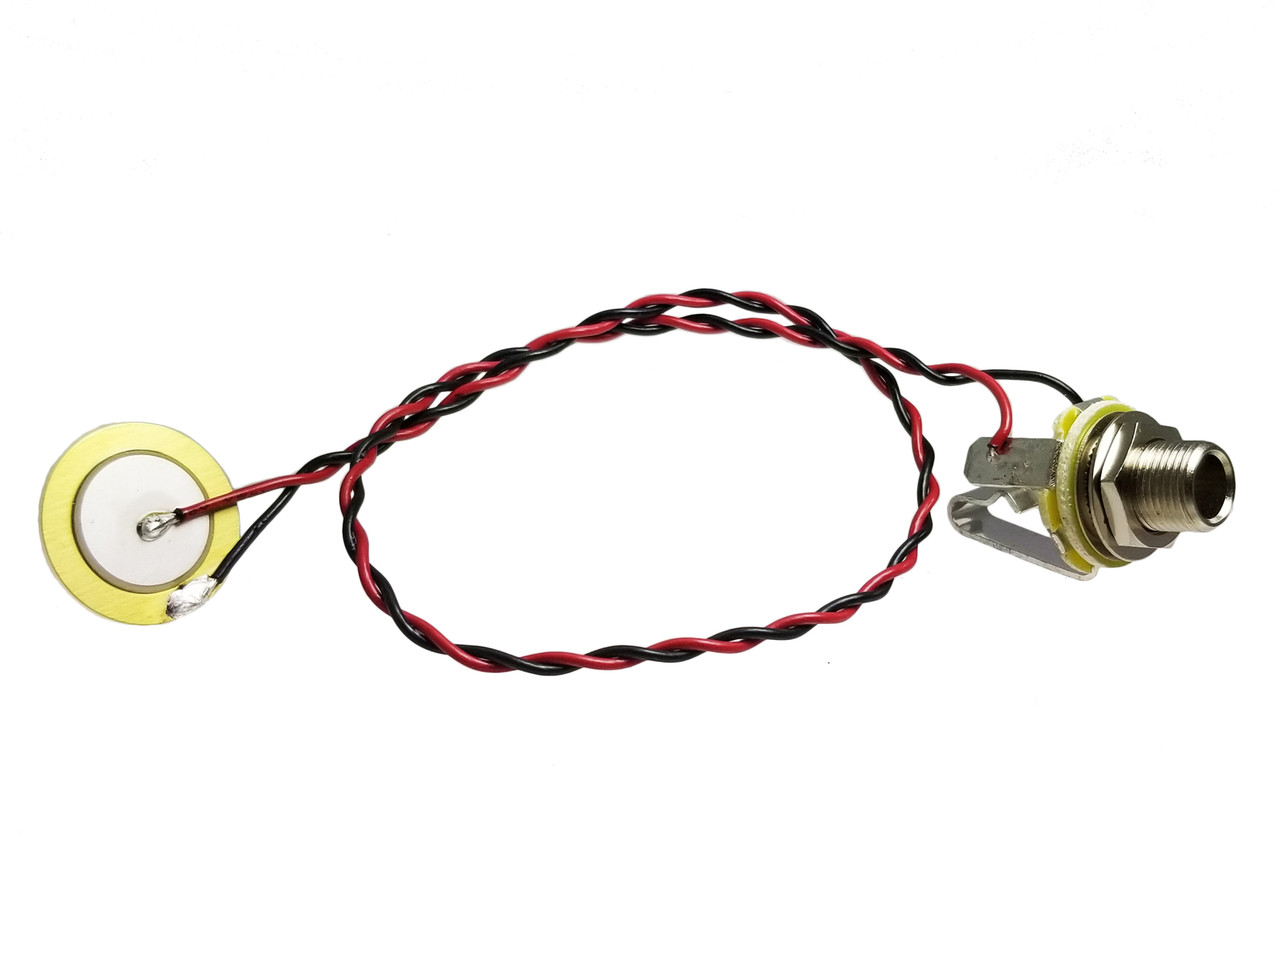 hight resolution of basic pre wired piezo jack harness with shielded cable c b gitty crafter supply